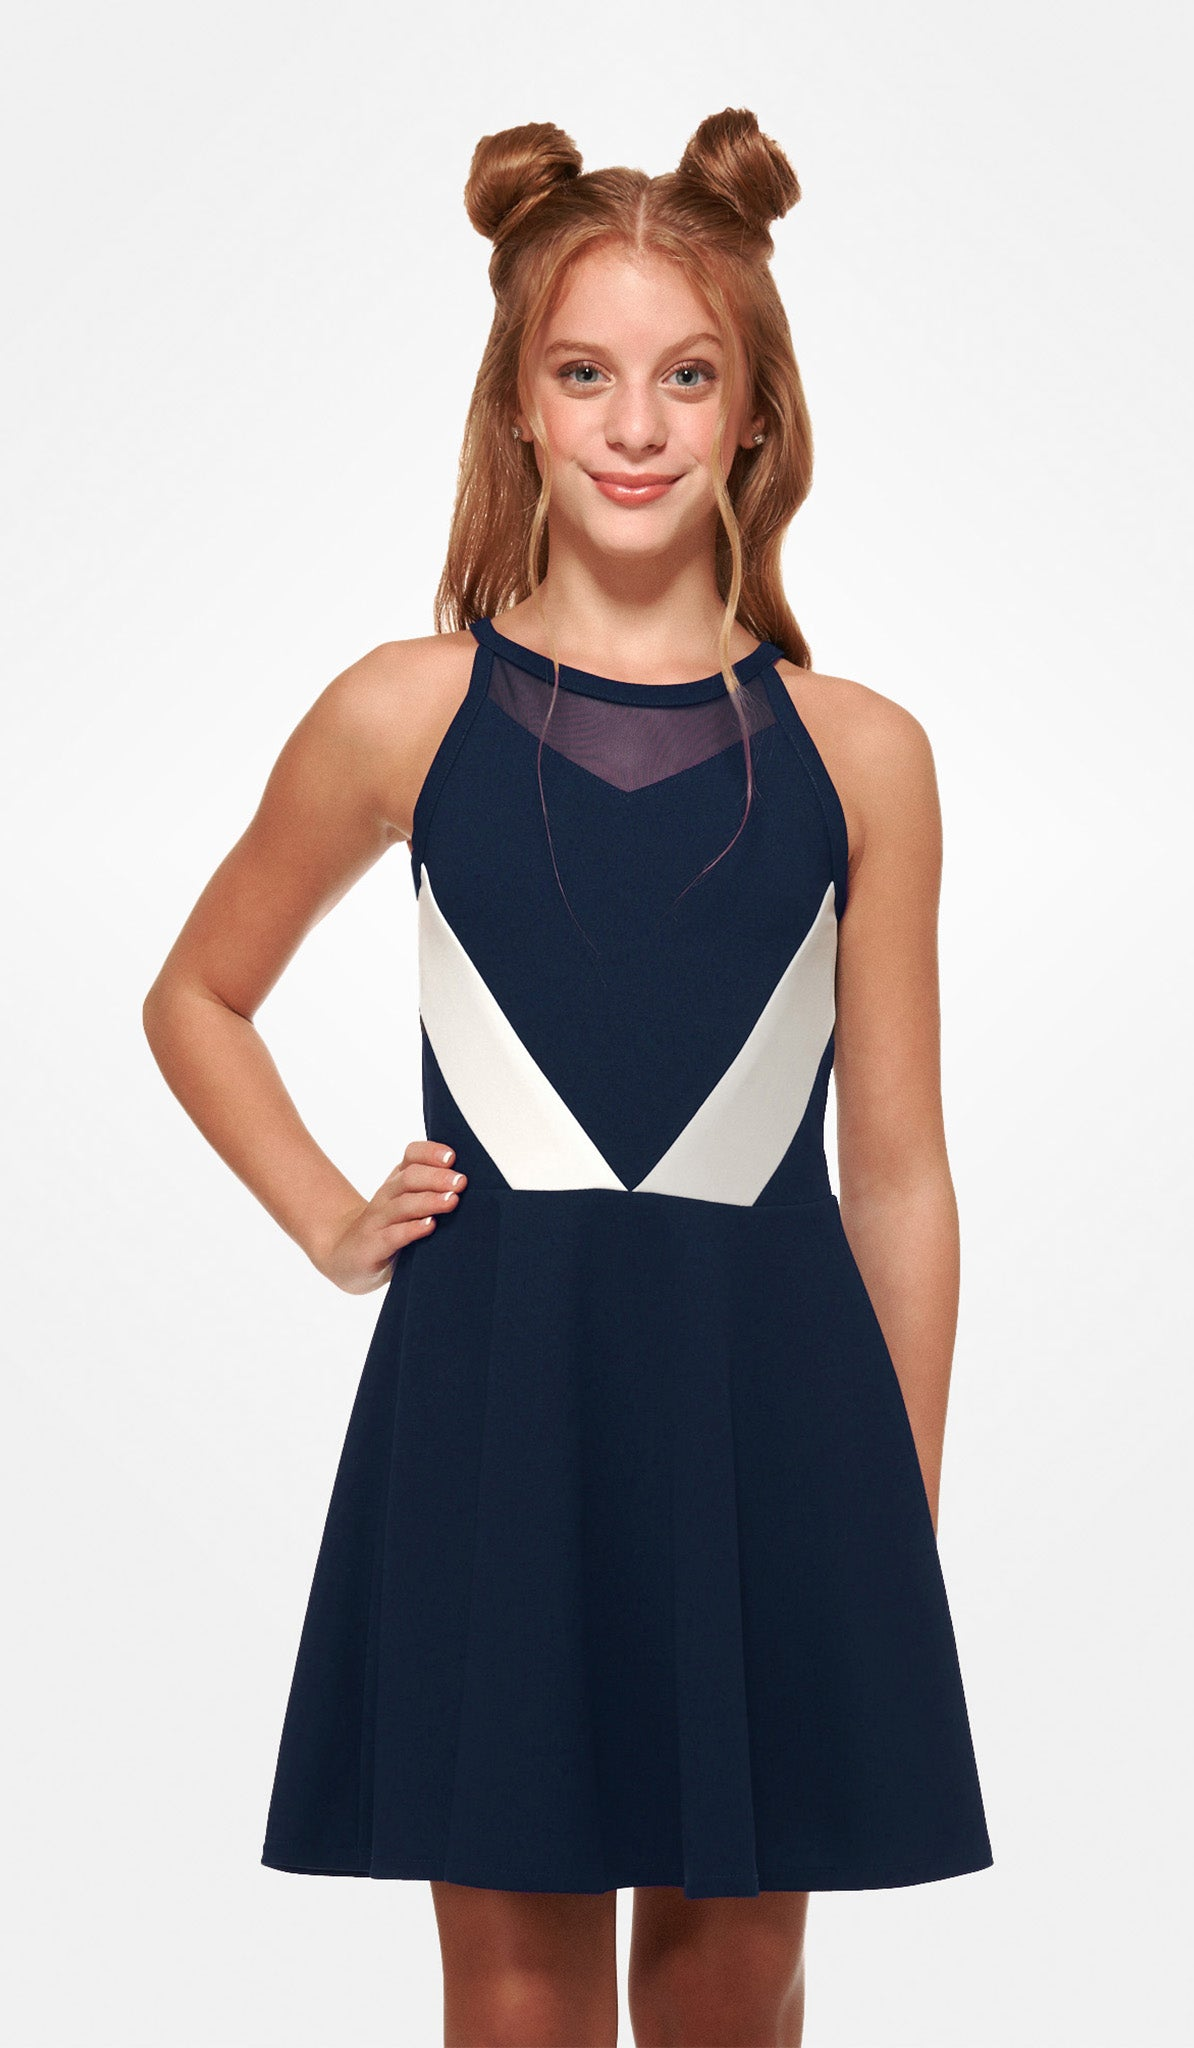 The Sally Miller Natalie Dress - Navy color block stretch crepe georgette dress with mesh illusion detail